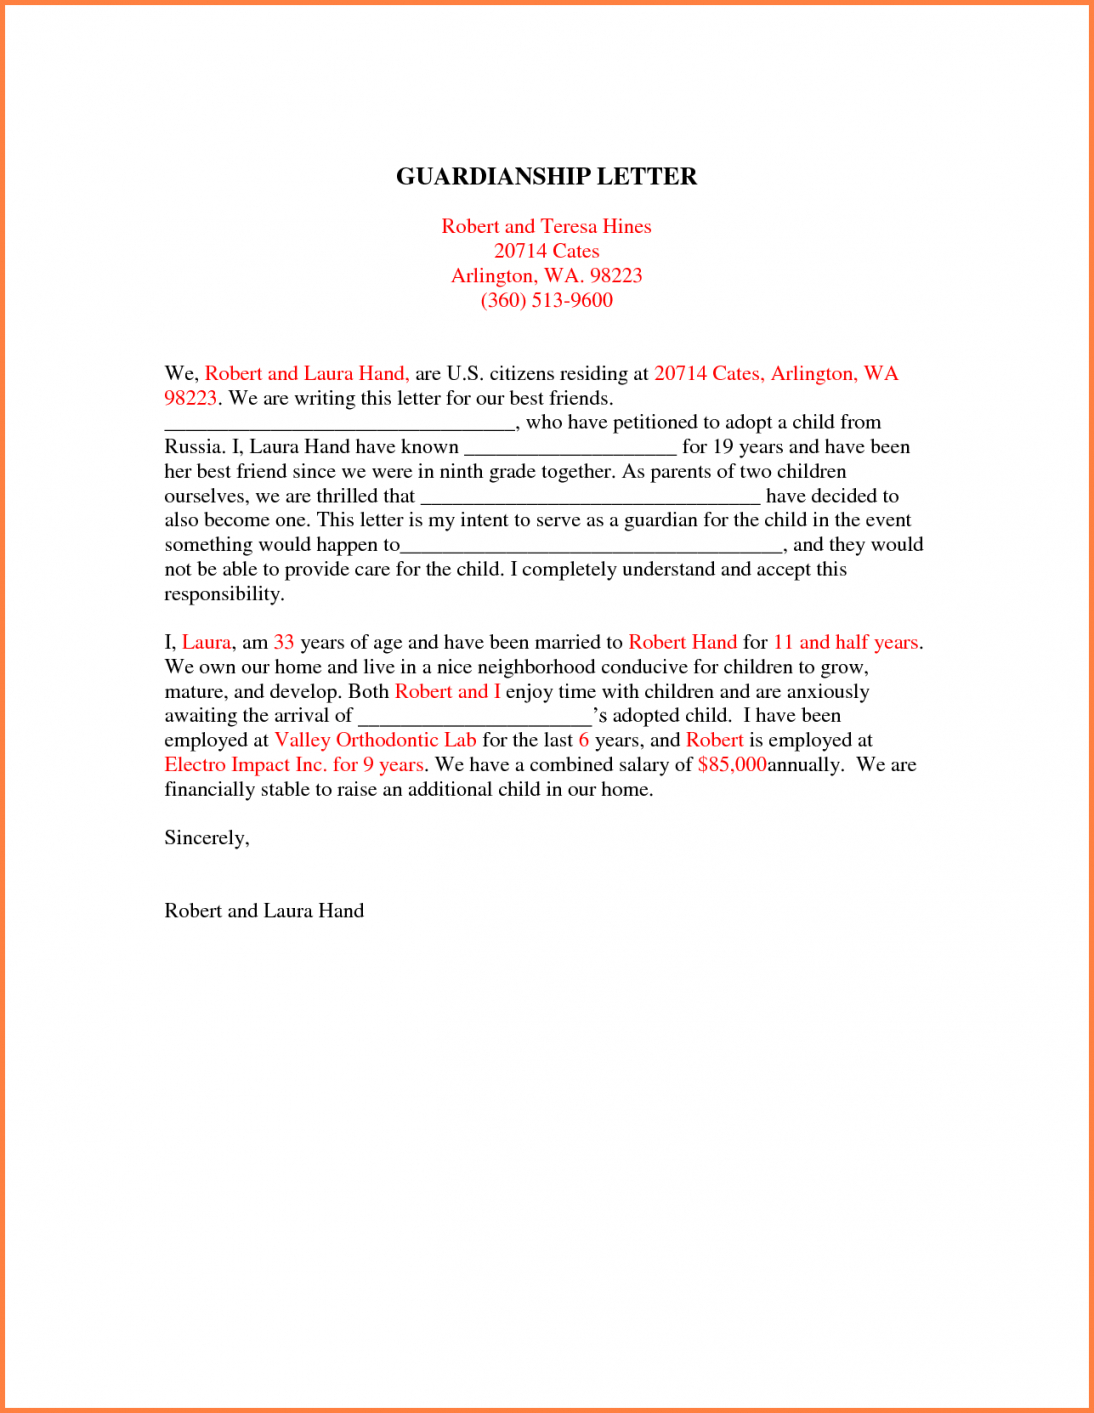 free 10 images of temporary custody letter template  bfegy temporary guardianship letter template